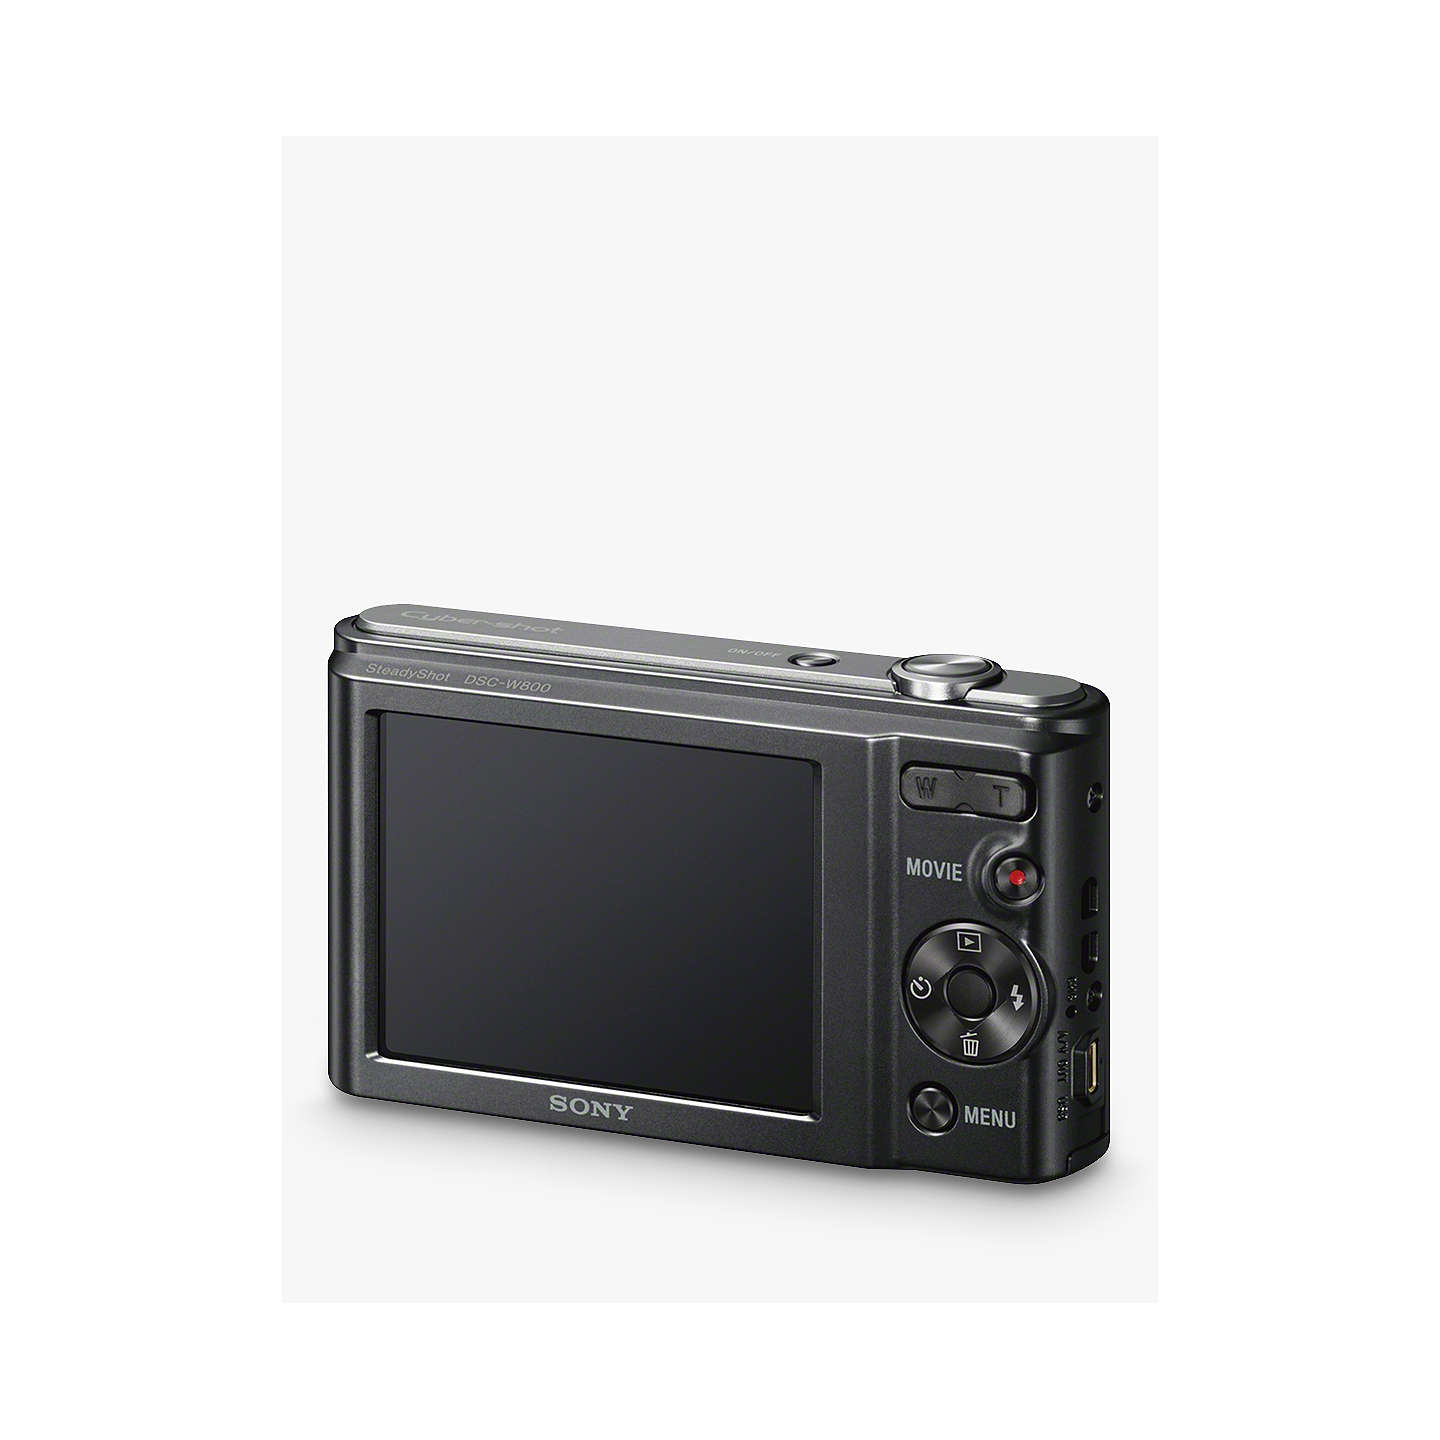 "BuySony CyberShot DSC-W800 Compact Camera, HD 720p, 20.1MP, 5x Optical Zoom, 2.7"" LCD Screen, Black Online at johnlewis.com"